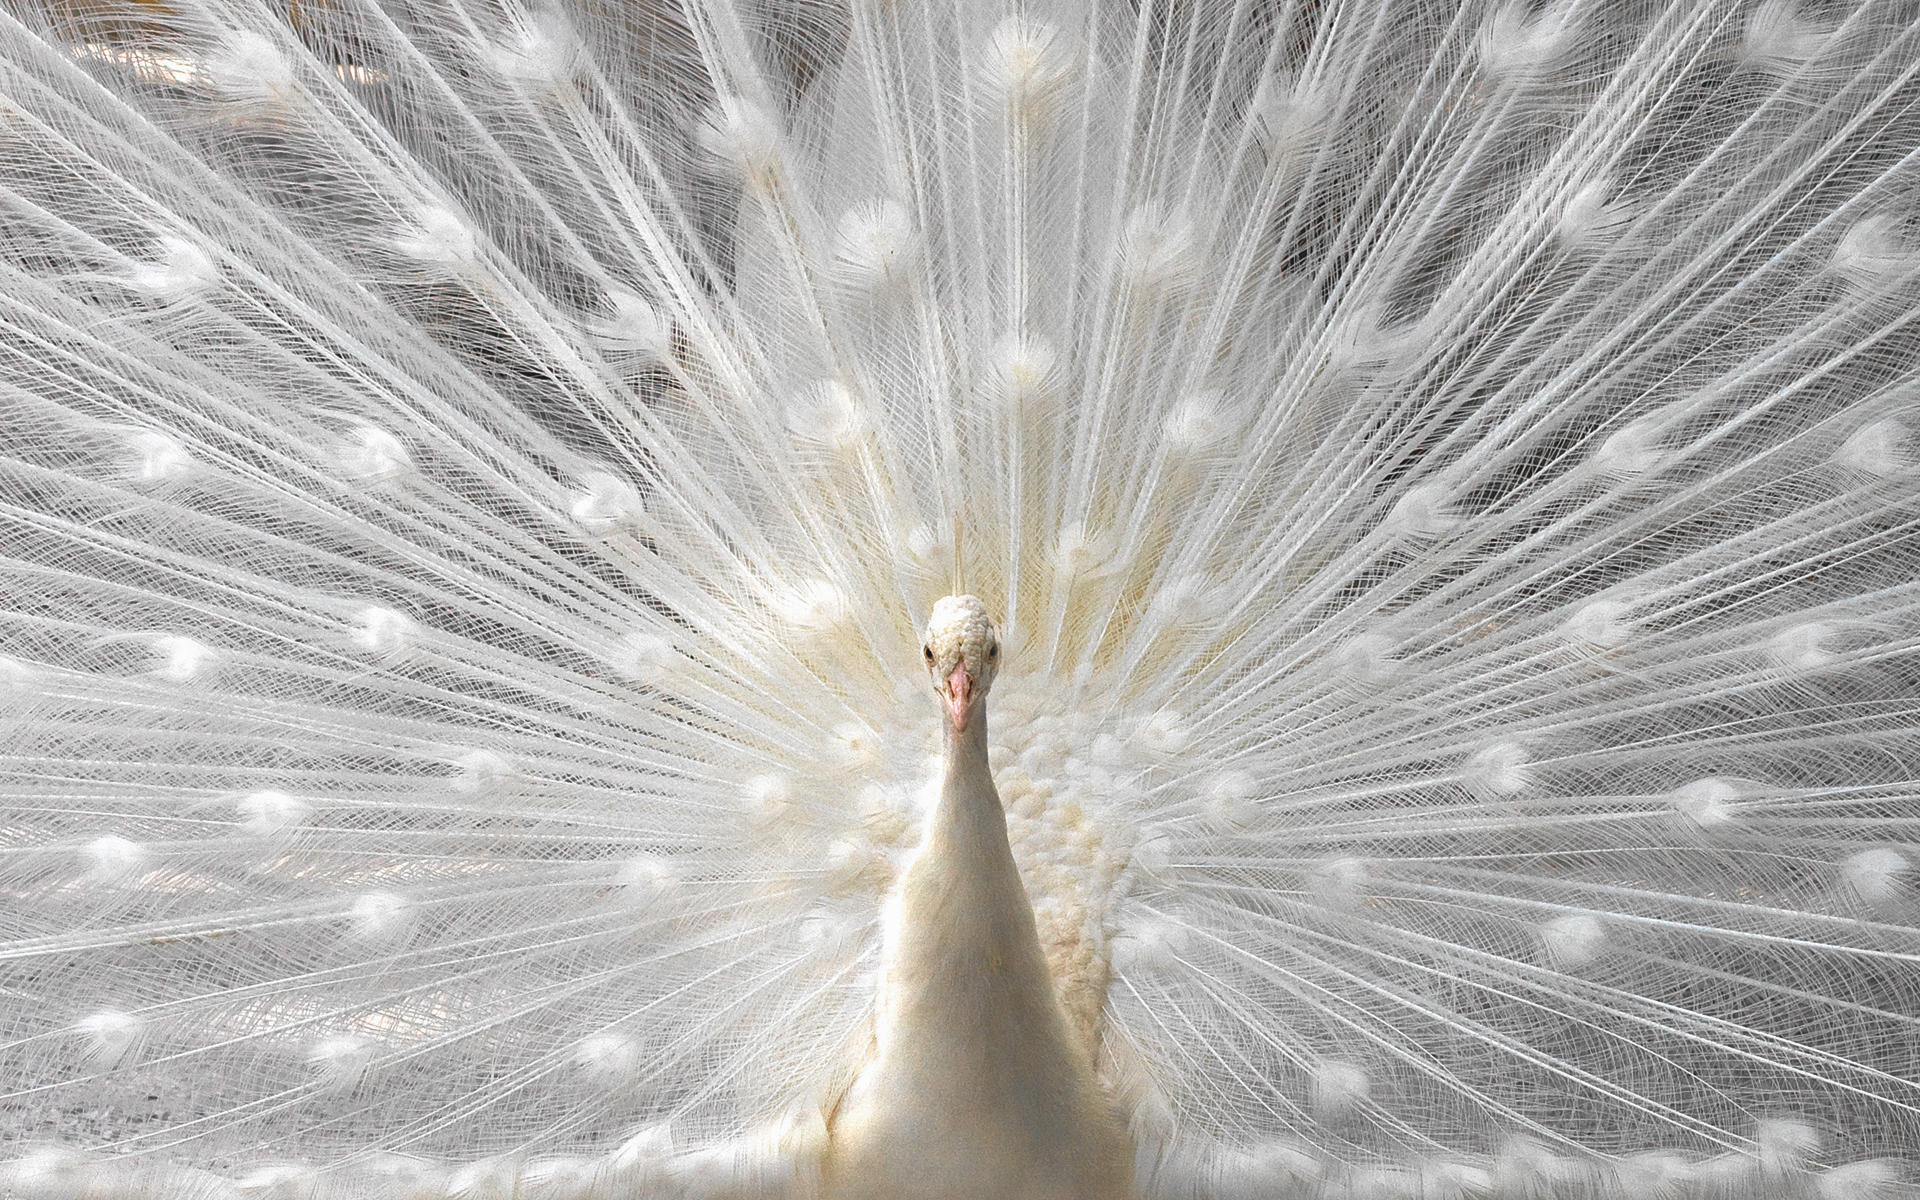 white Birds feathers dancing